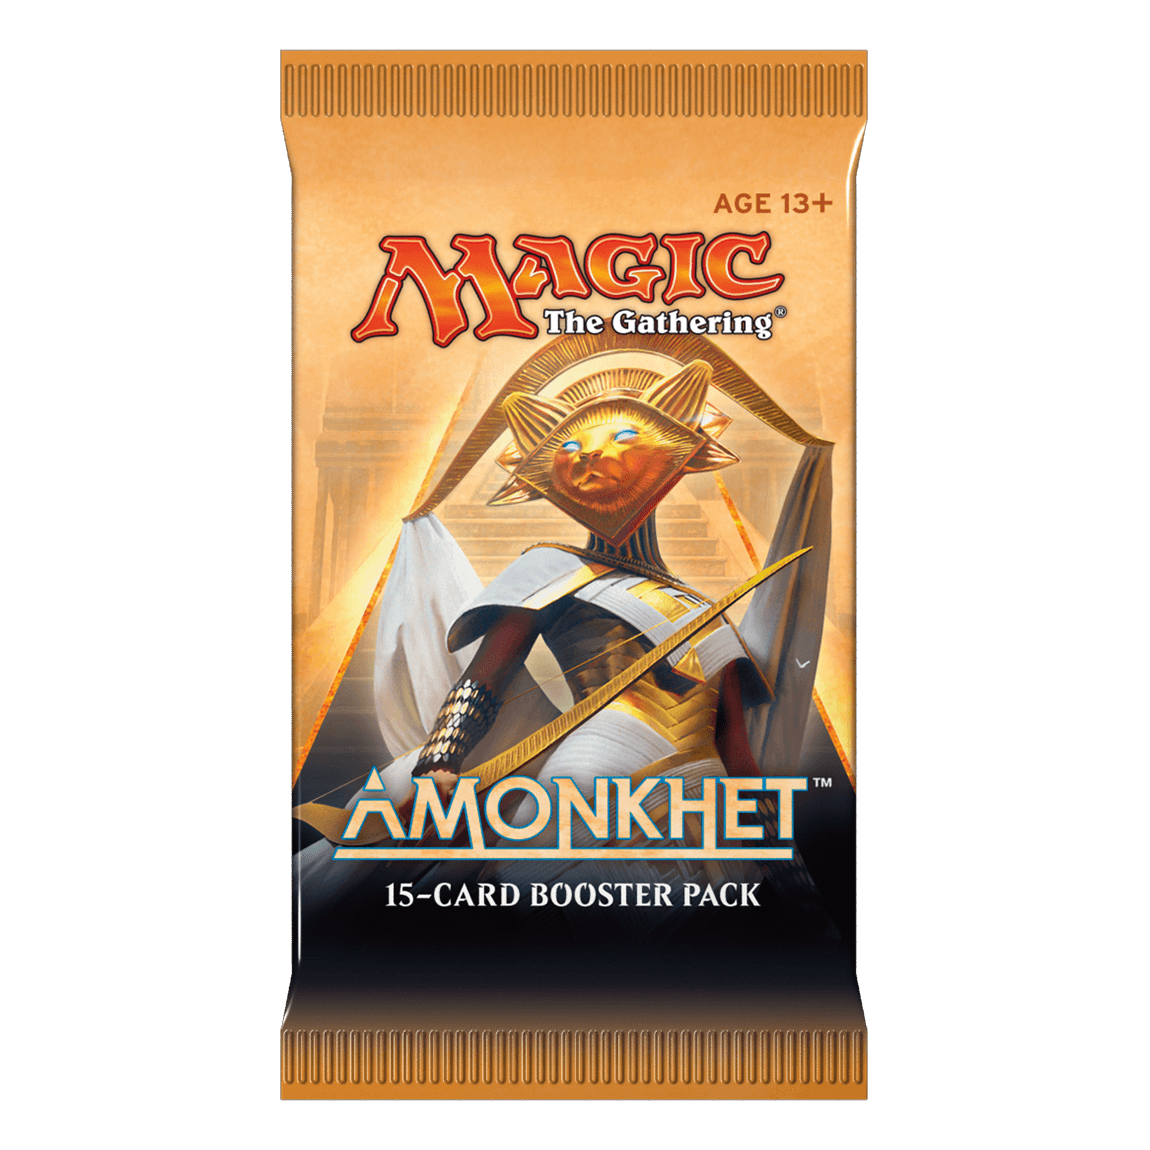 Amonkhet Sealed Product